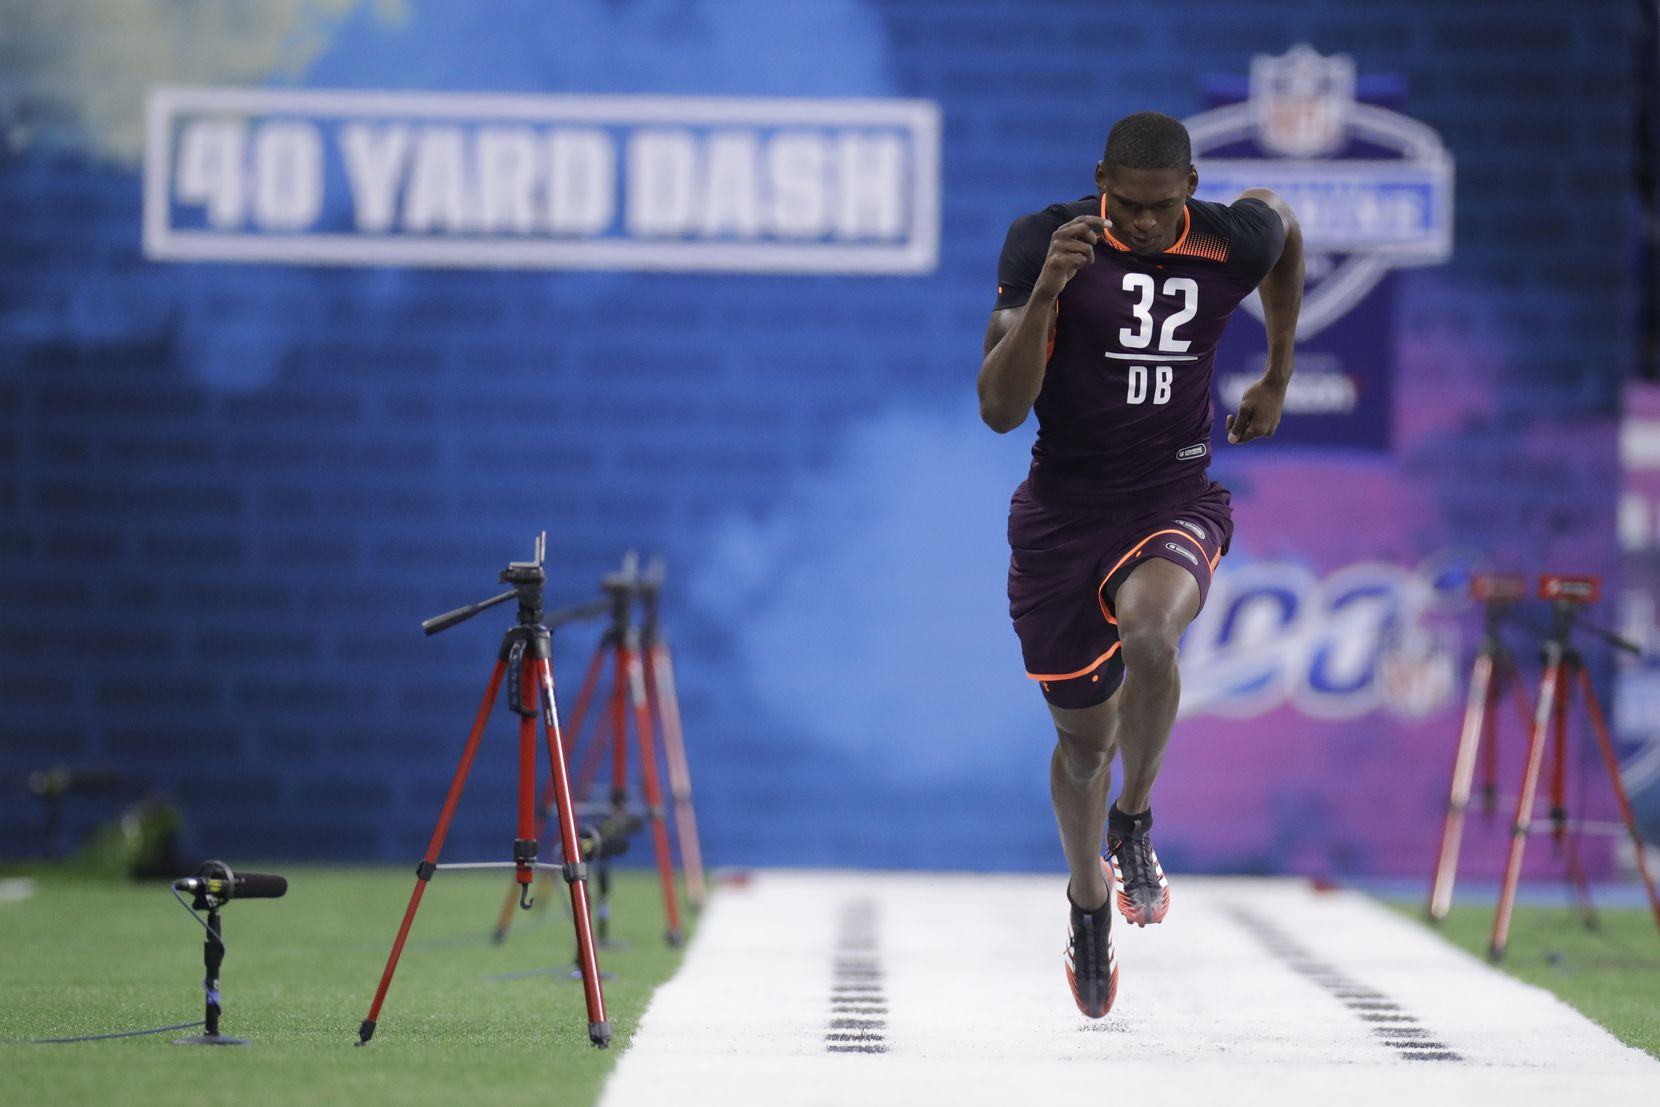 Baylor defensive back Derrek Thomas runs the 40-yard dash during the NFL football scouting combine, Monday, March 4, 2019, in Indianapolis. (AP Photo/Darron Cummings)